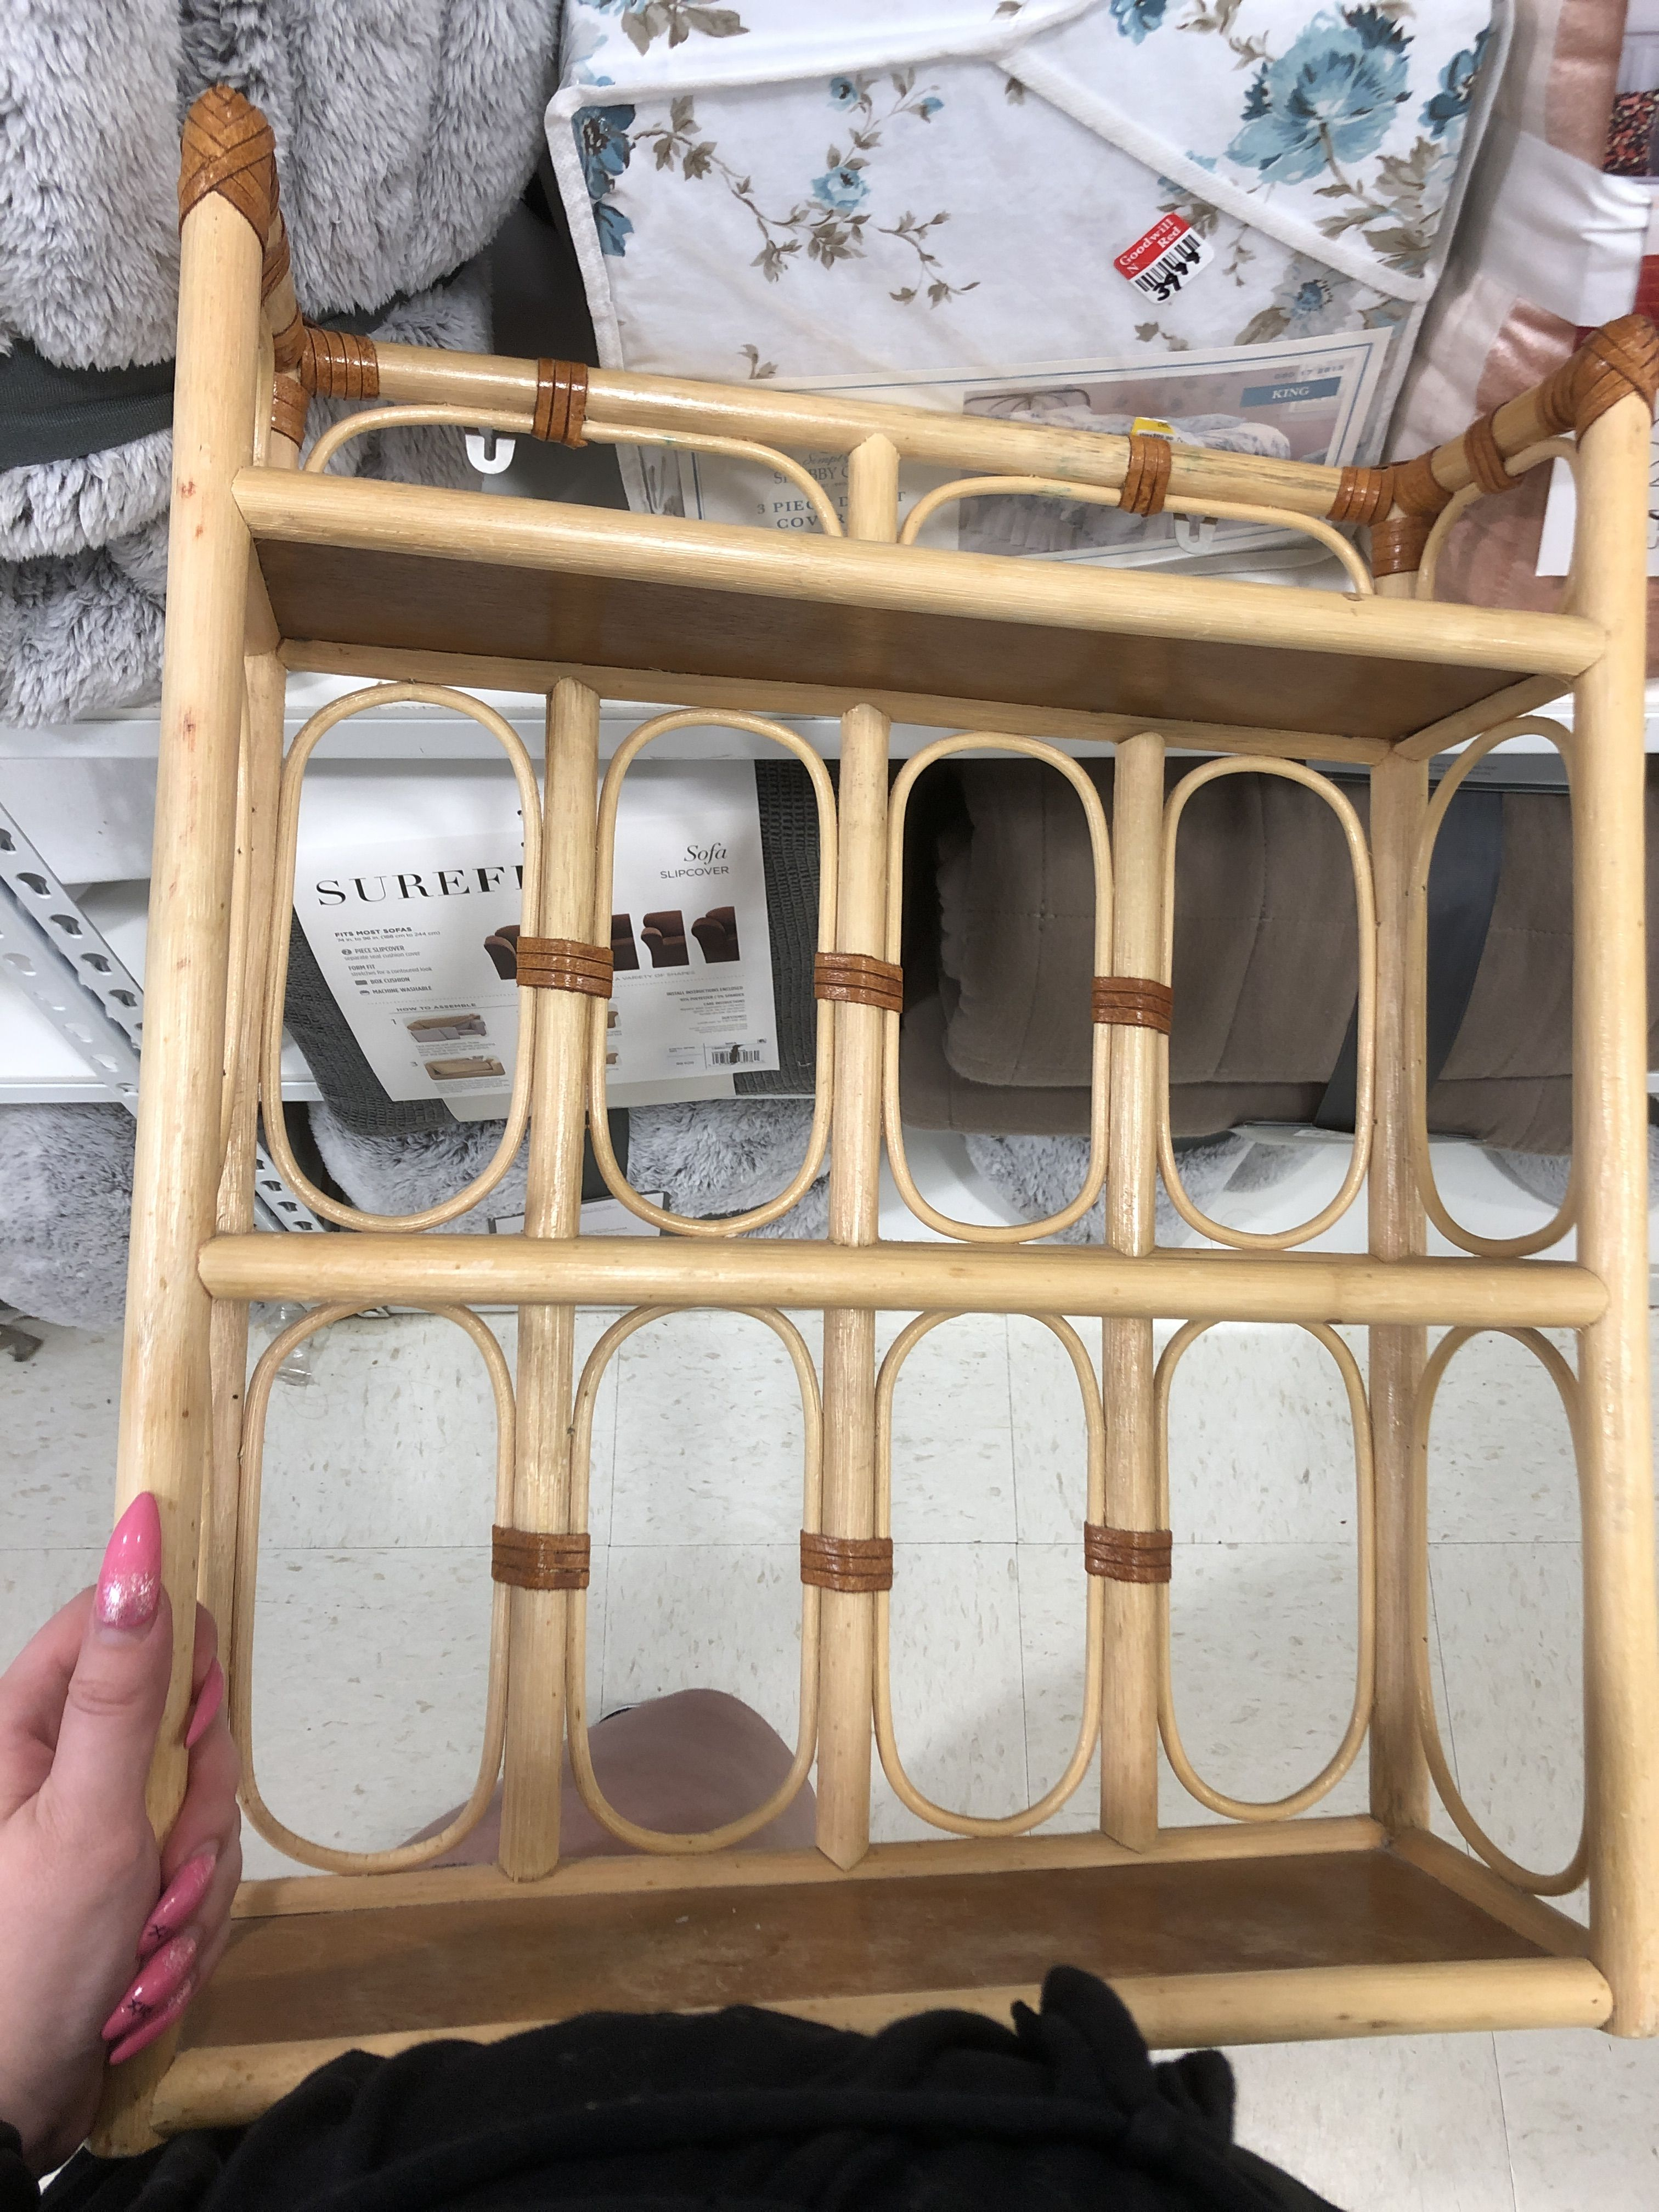 Pin by Amy on KGC STYLE   Decor, Home decor, Wine rack